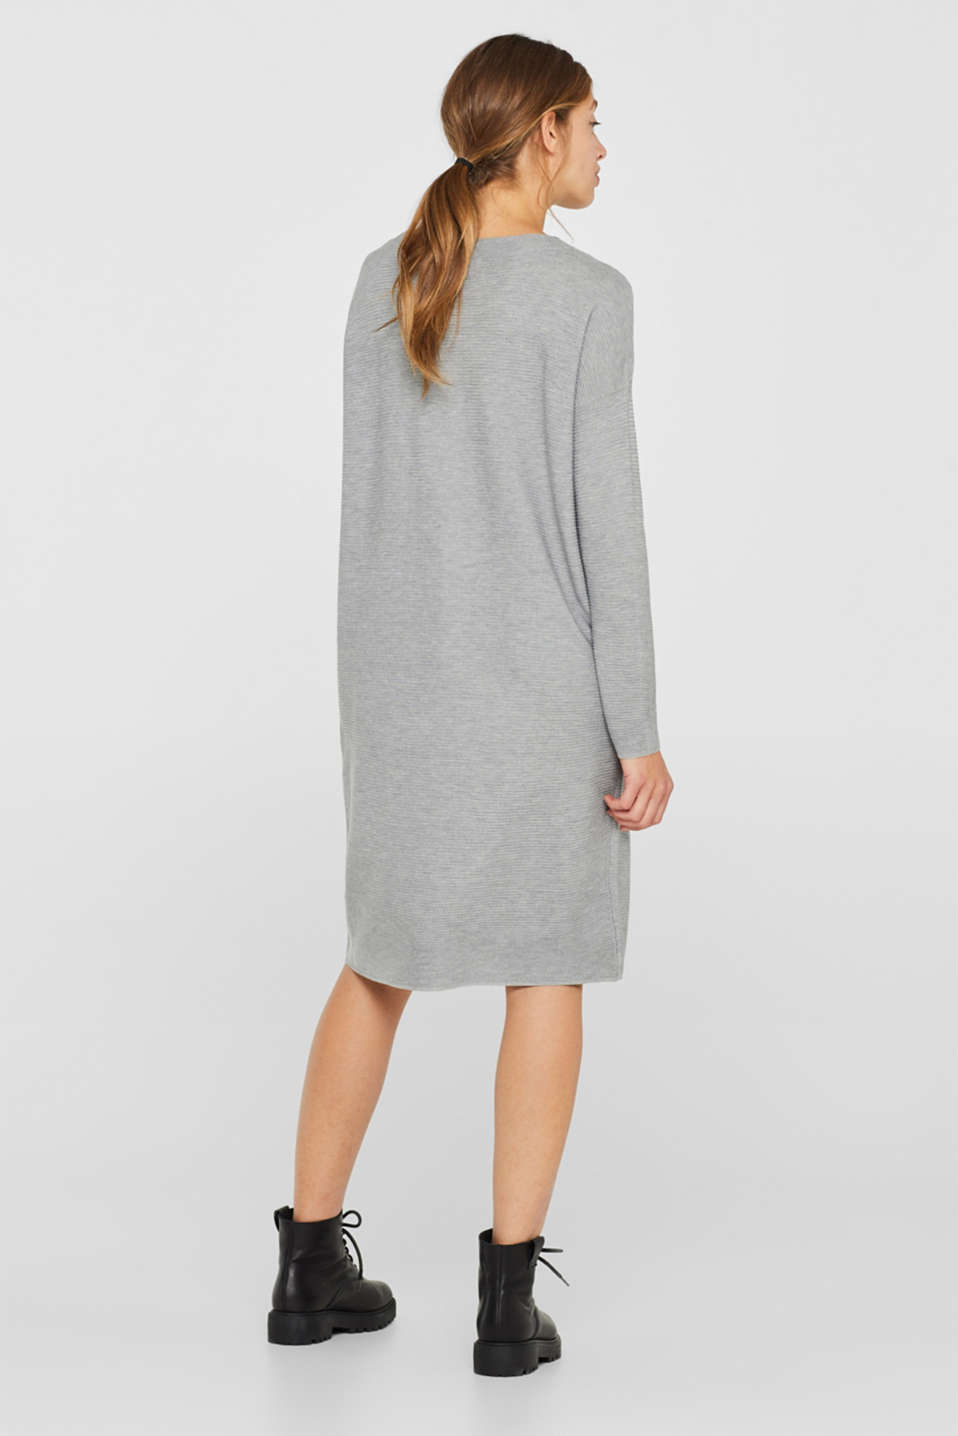 Knit dress with a ribbed texture, MEDIUM GREY 5, detail image number 2